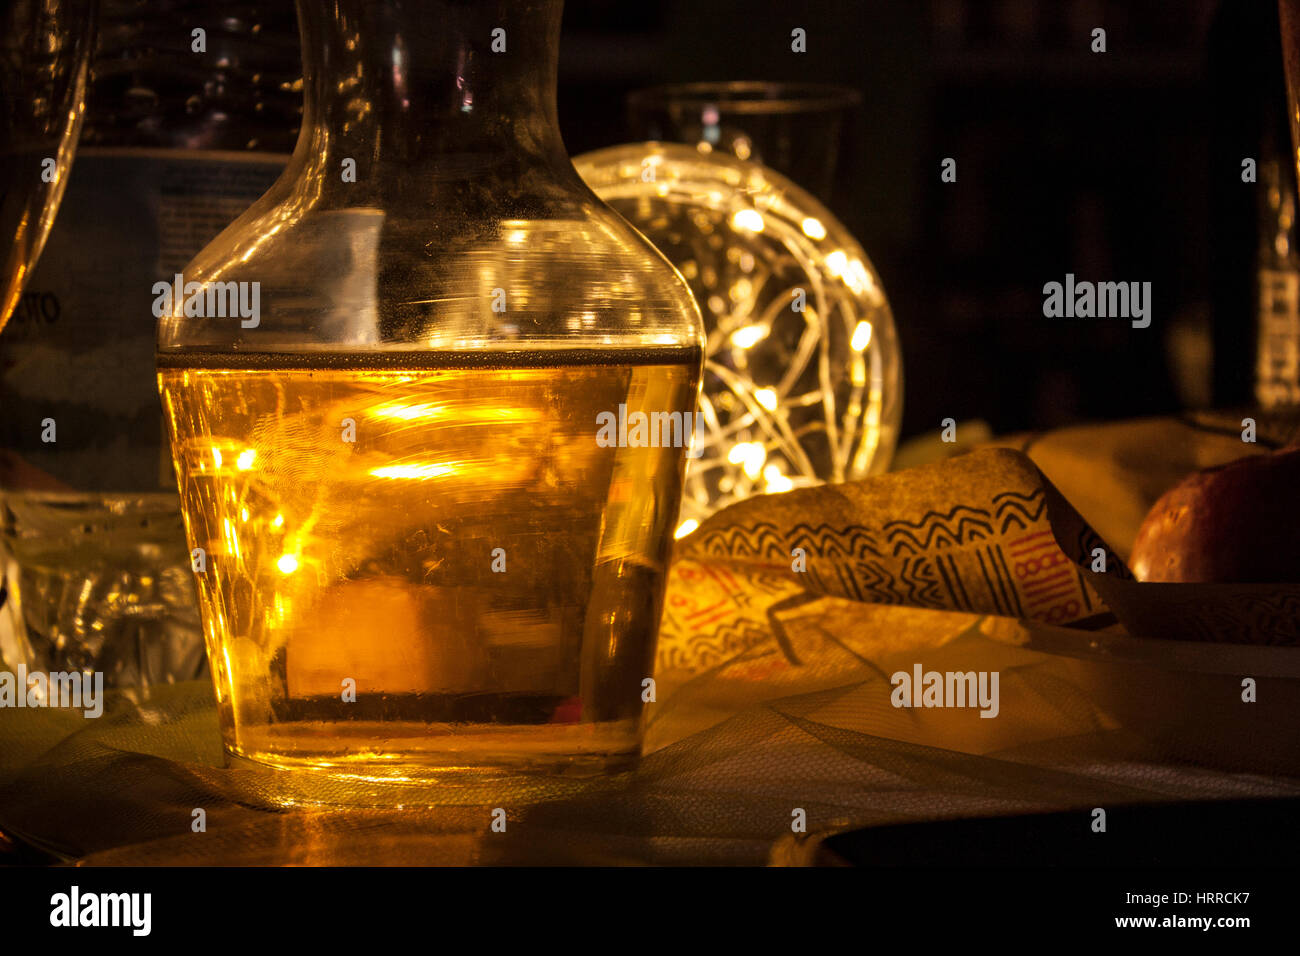 Wine draft in a table during a typical Italian dinner - Stock Image